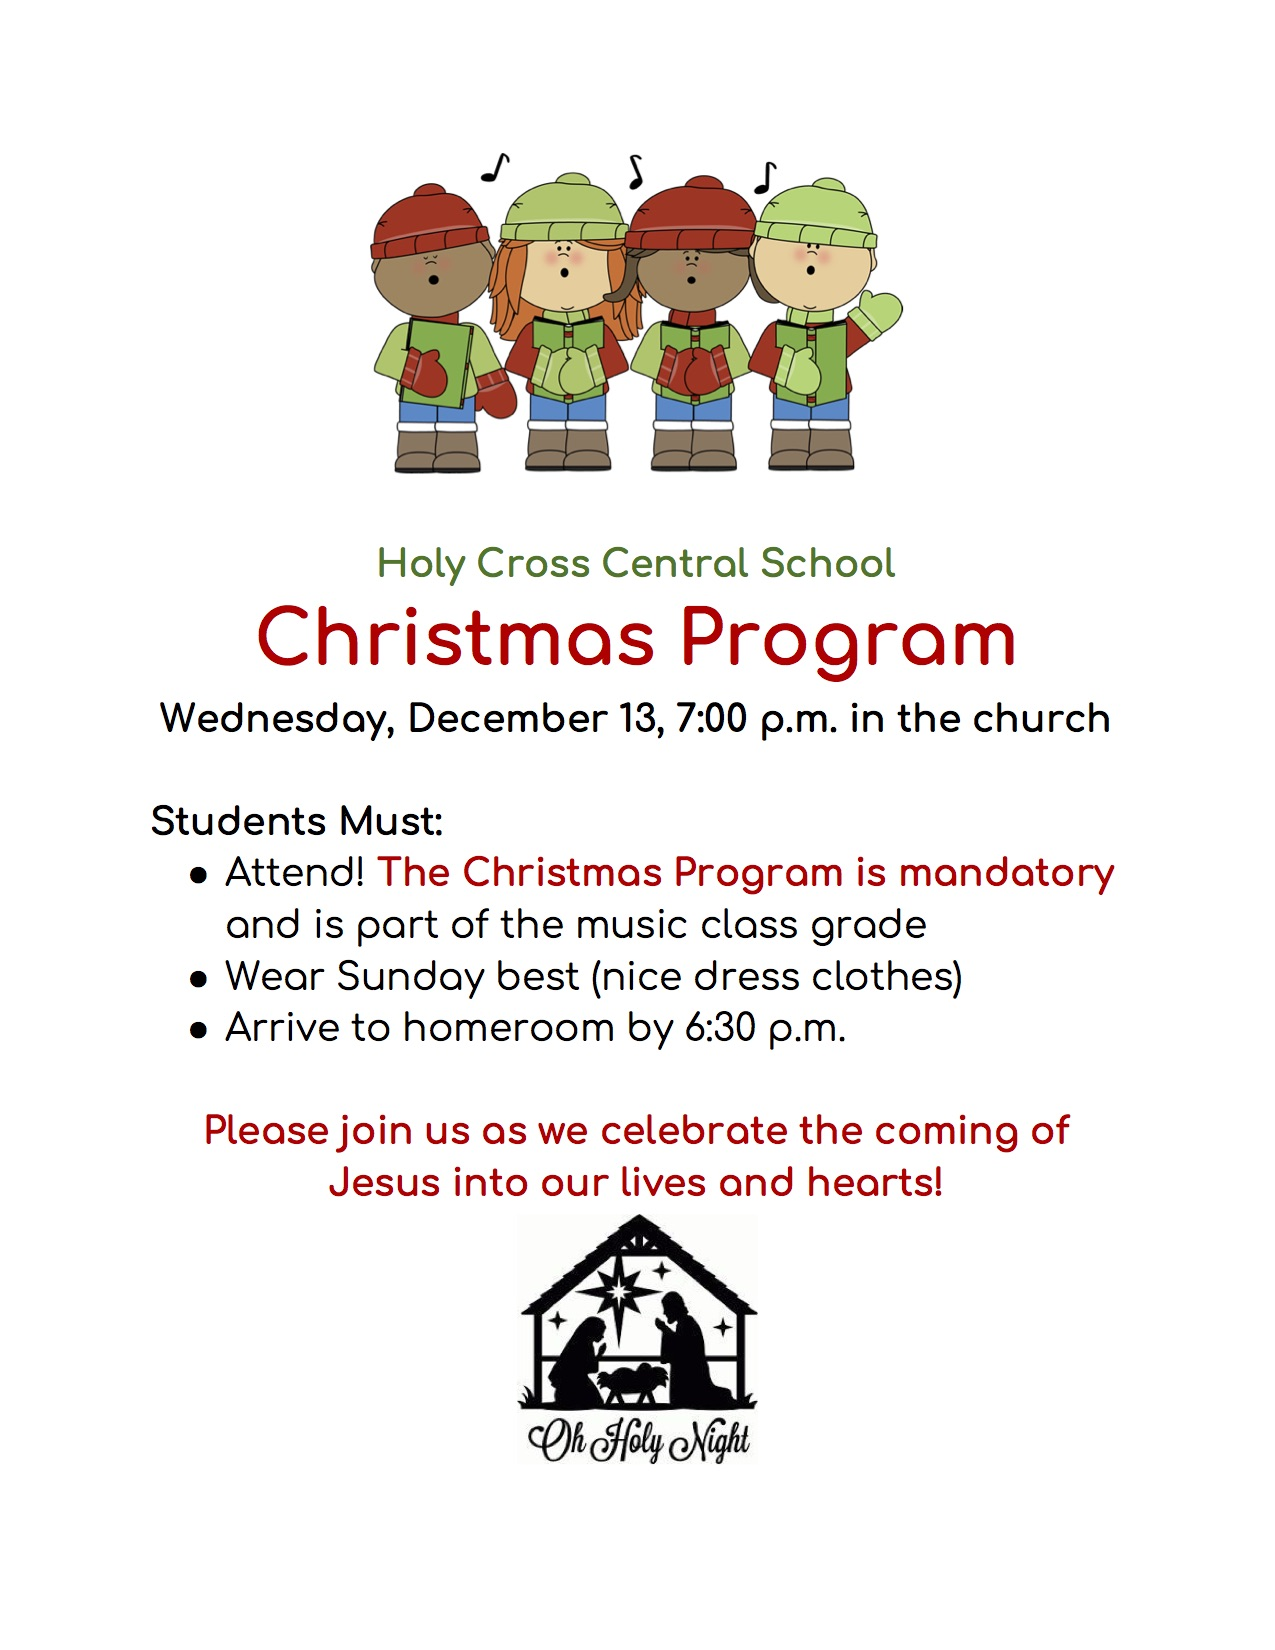 Christmas Program Flier.jpg